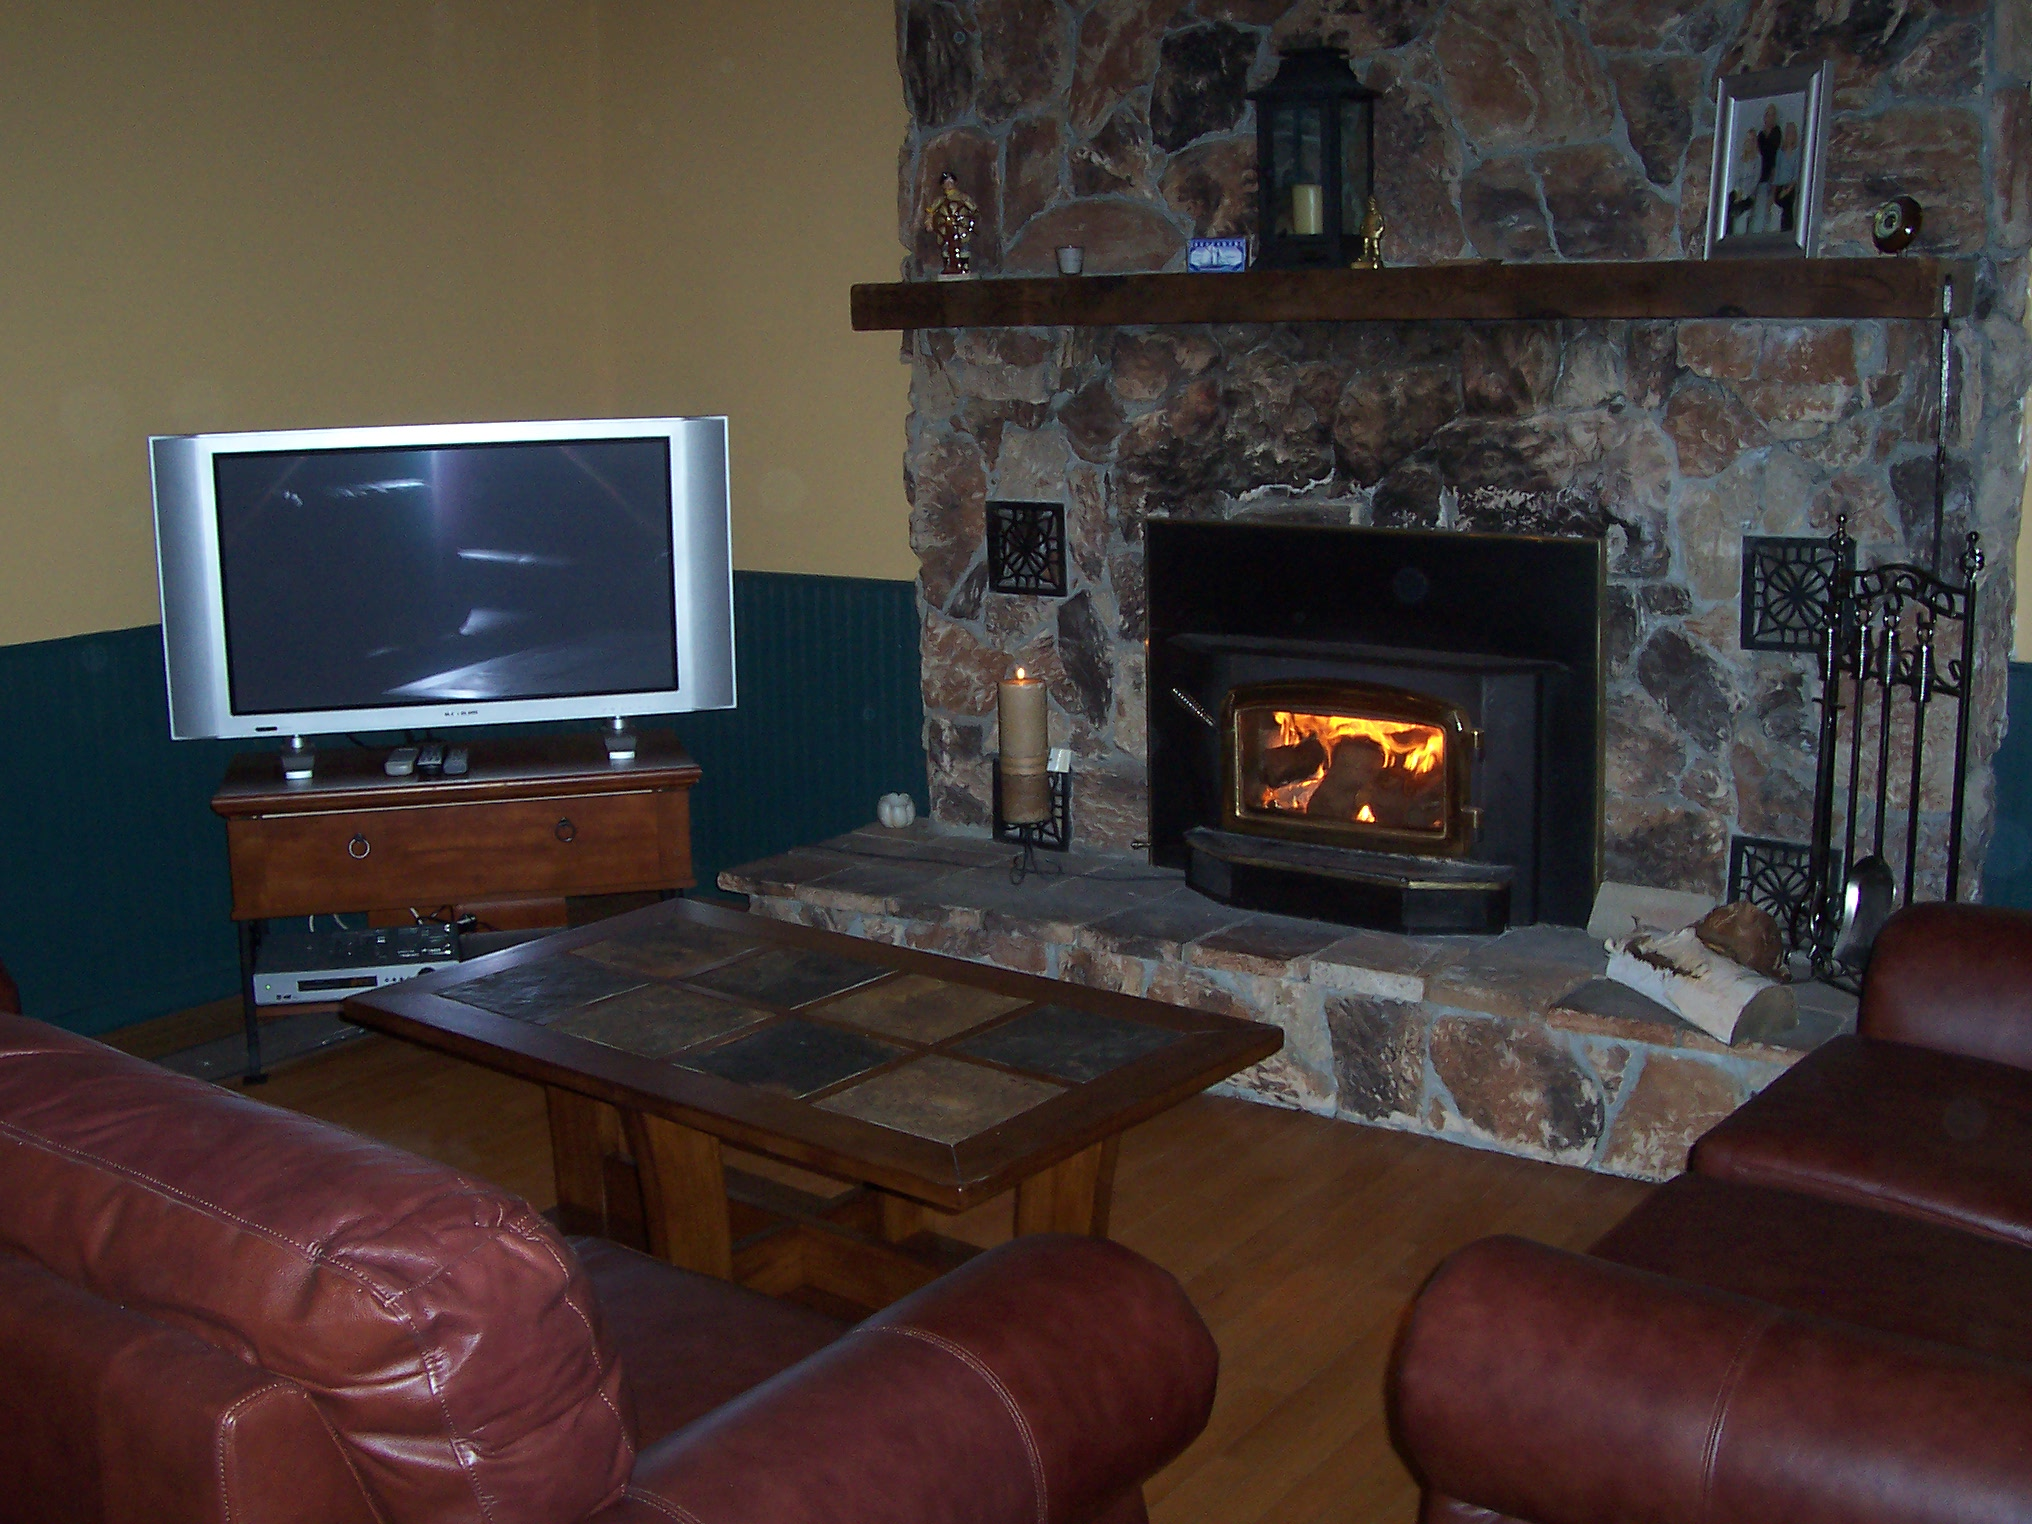 Another view of living room/fireplace.